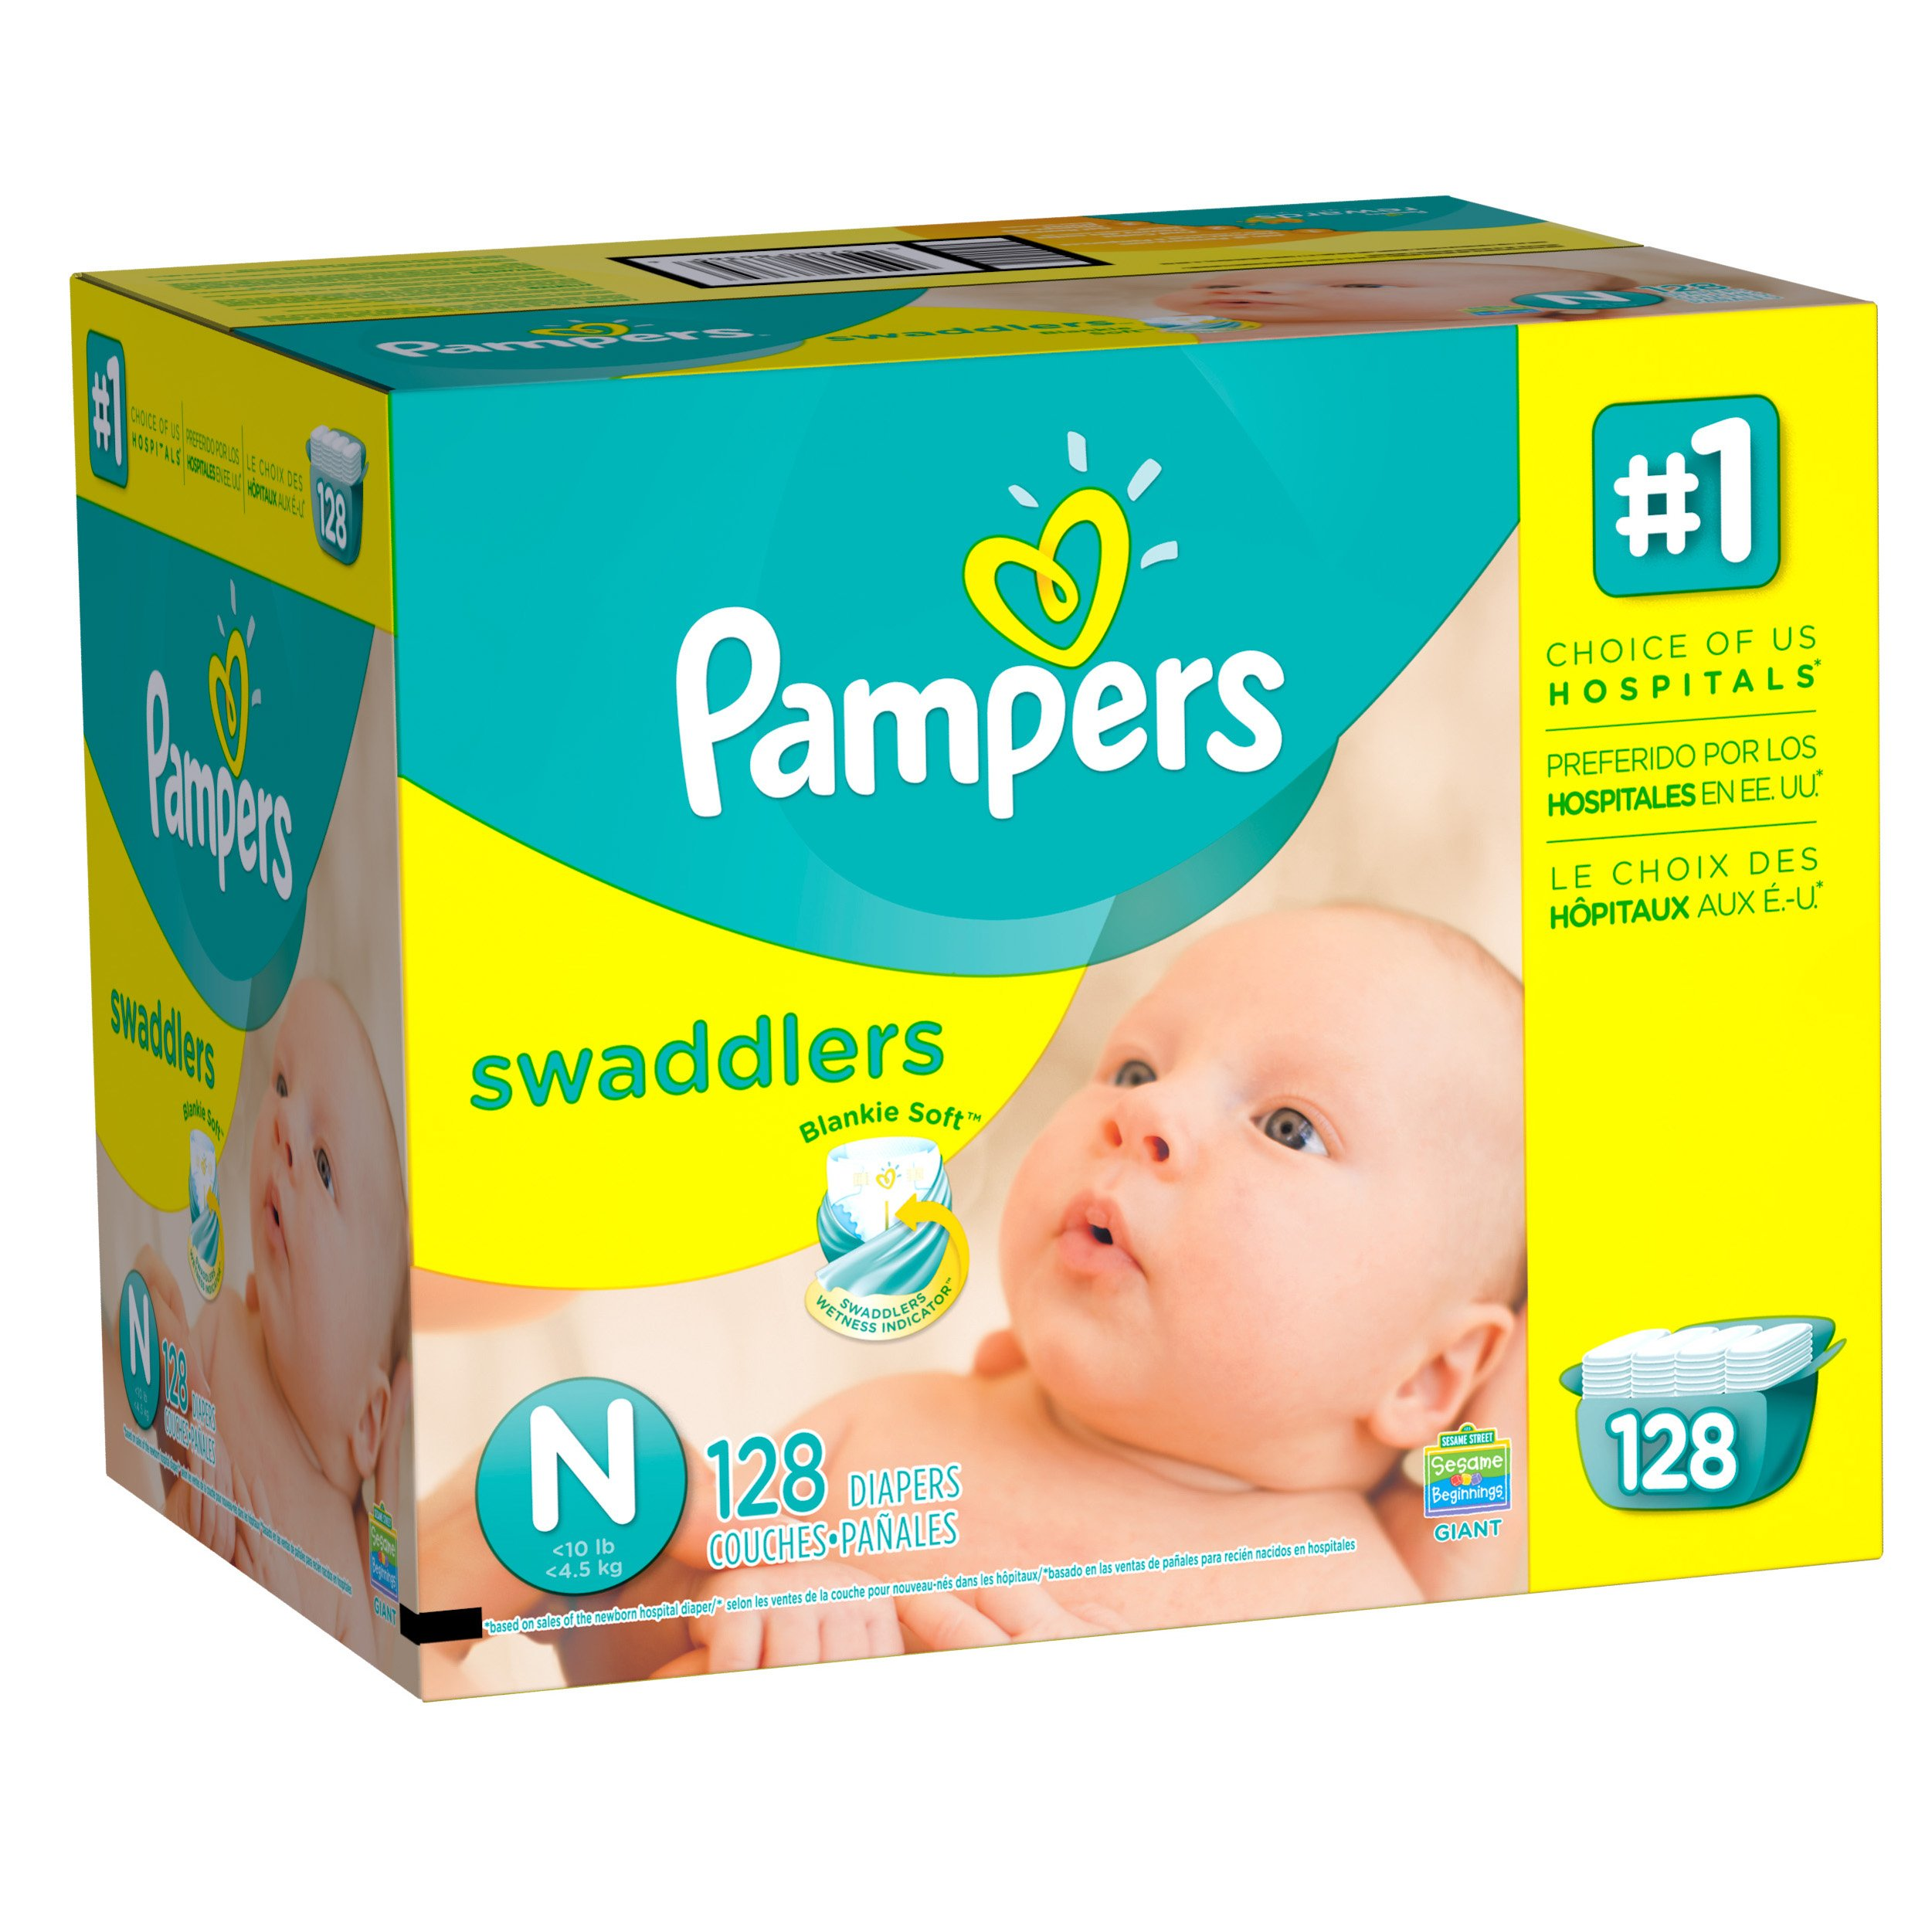 Pampers Swaddlers Disposable Diapers Newborn Size 0 (> 10 lb), 128 Count, GIANT